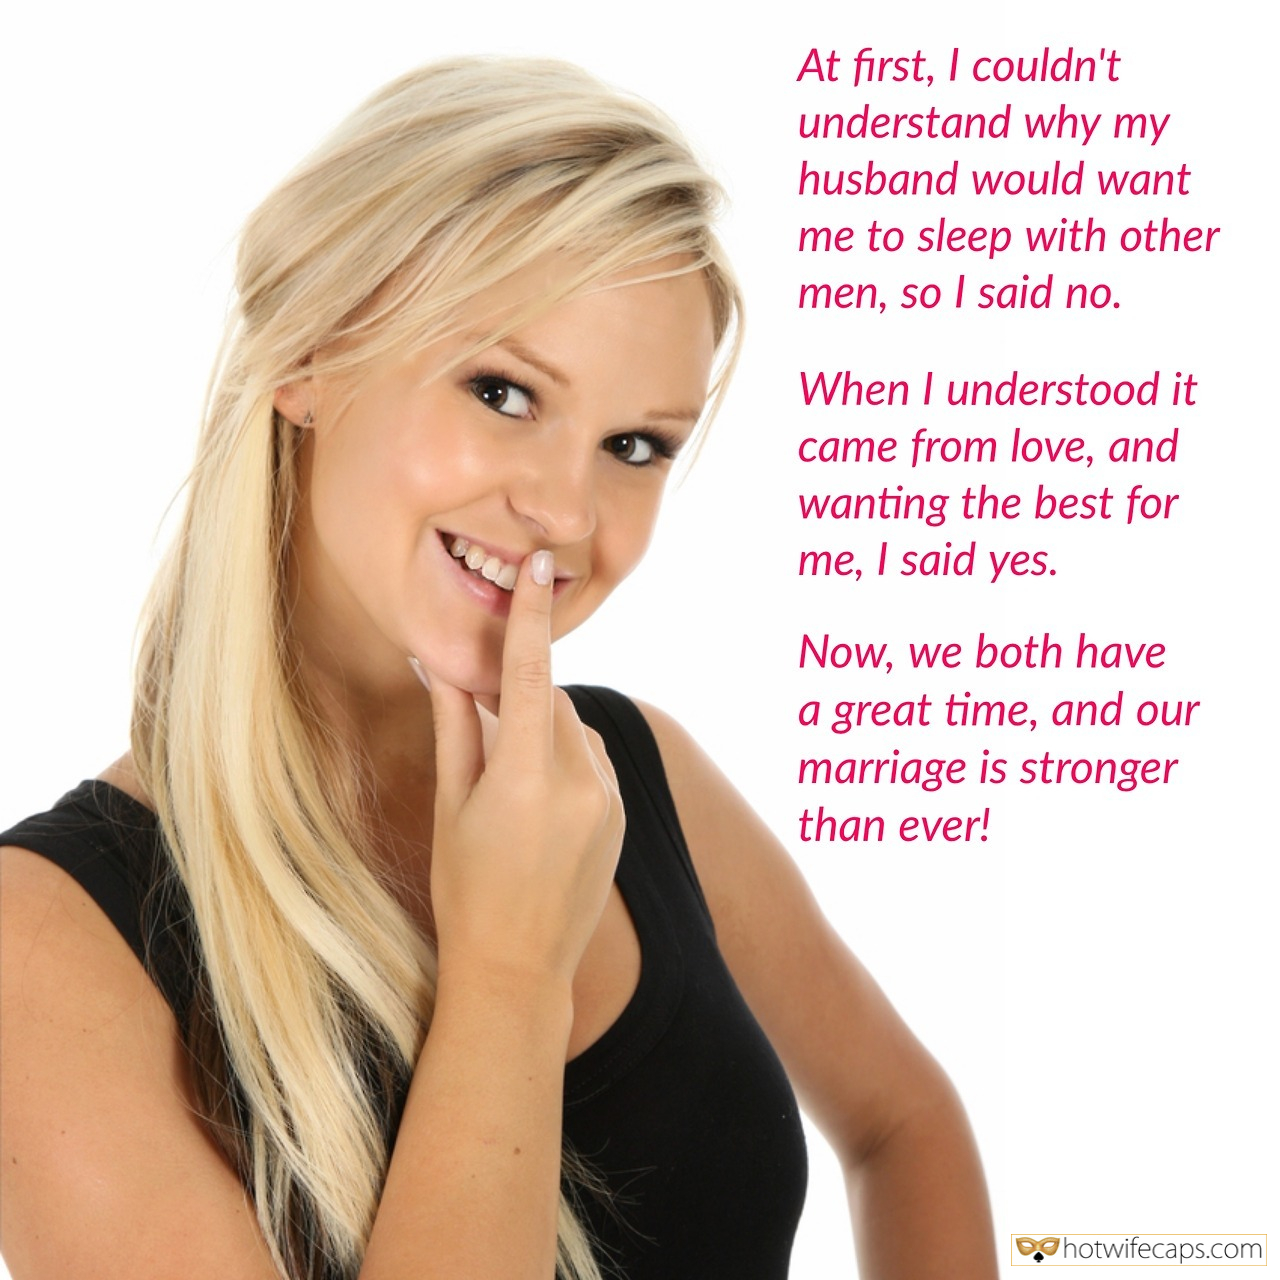 Sexy Memes hotwife caption: At first, I couldn't understand why my husband would want me to sleep with other men, so I said no. When I understood it came from love, and wanting the best for me, I said yes. Now, we both have...